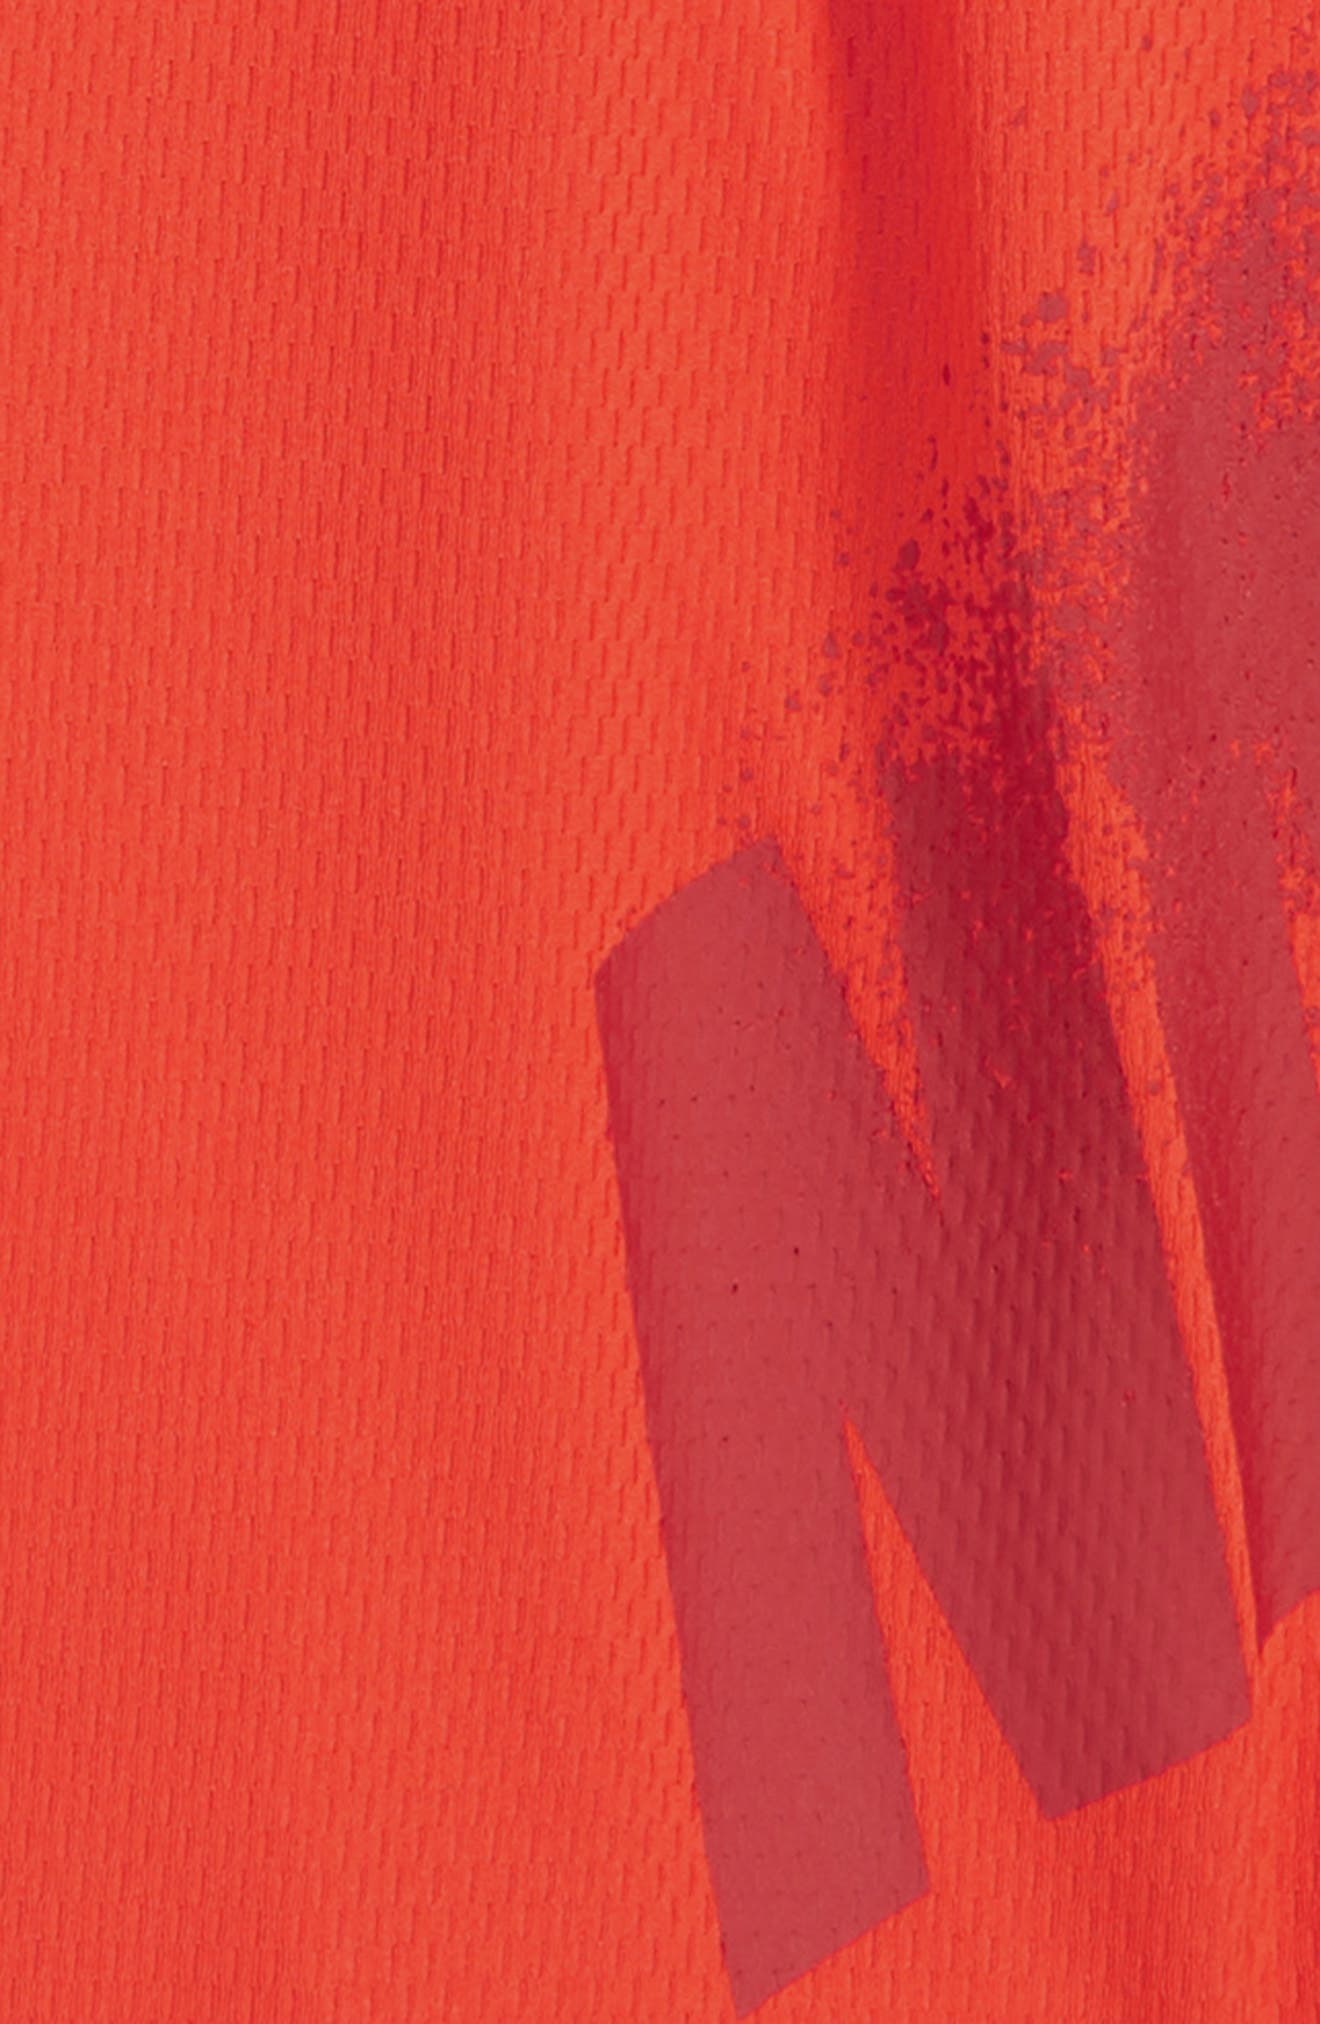 Dry GFX Athletic Shorts,                             Alternate thumbnail 2, color,                             HABANERO RED/ GYM RED